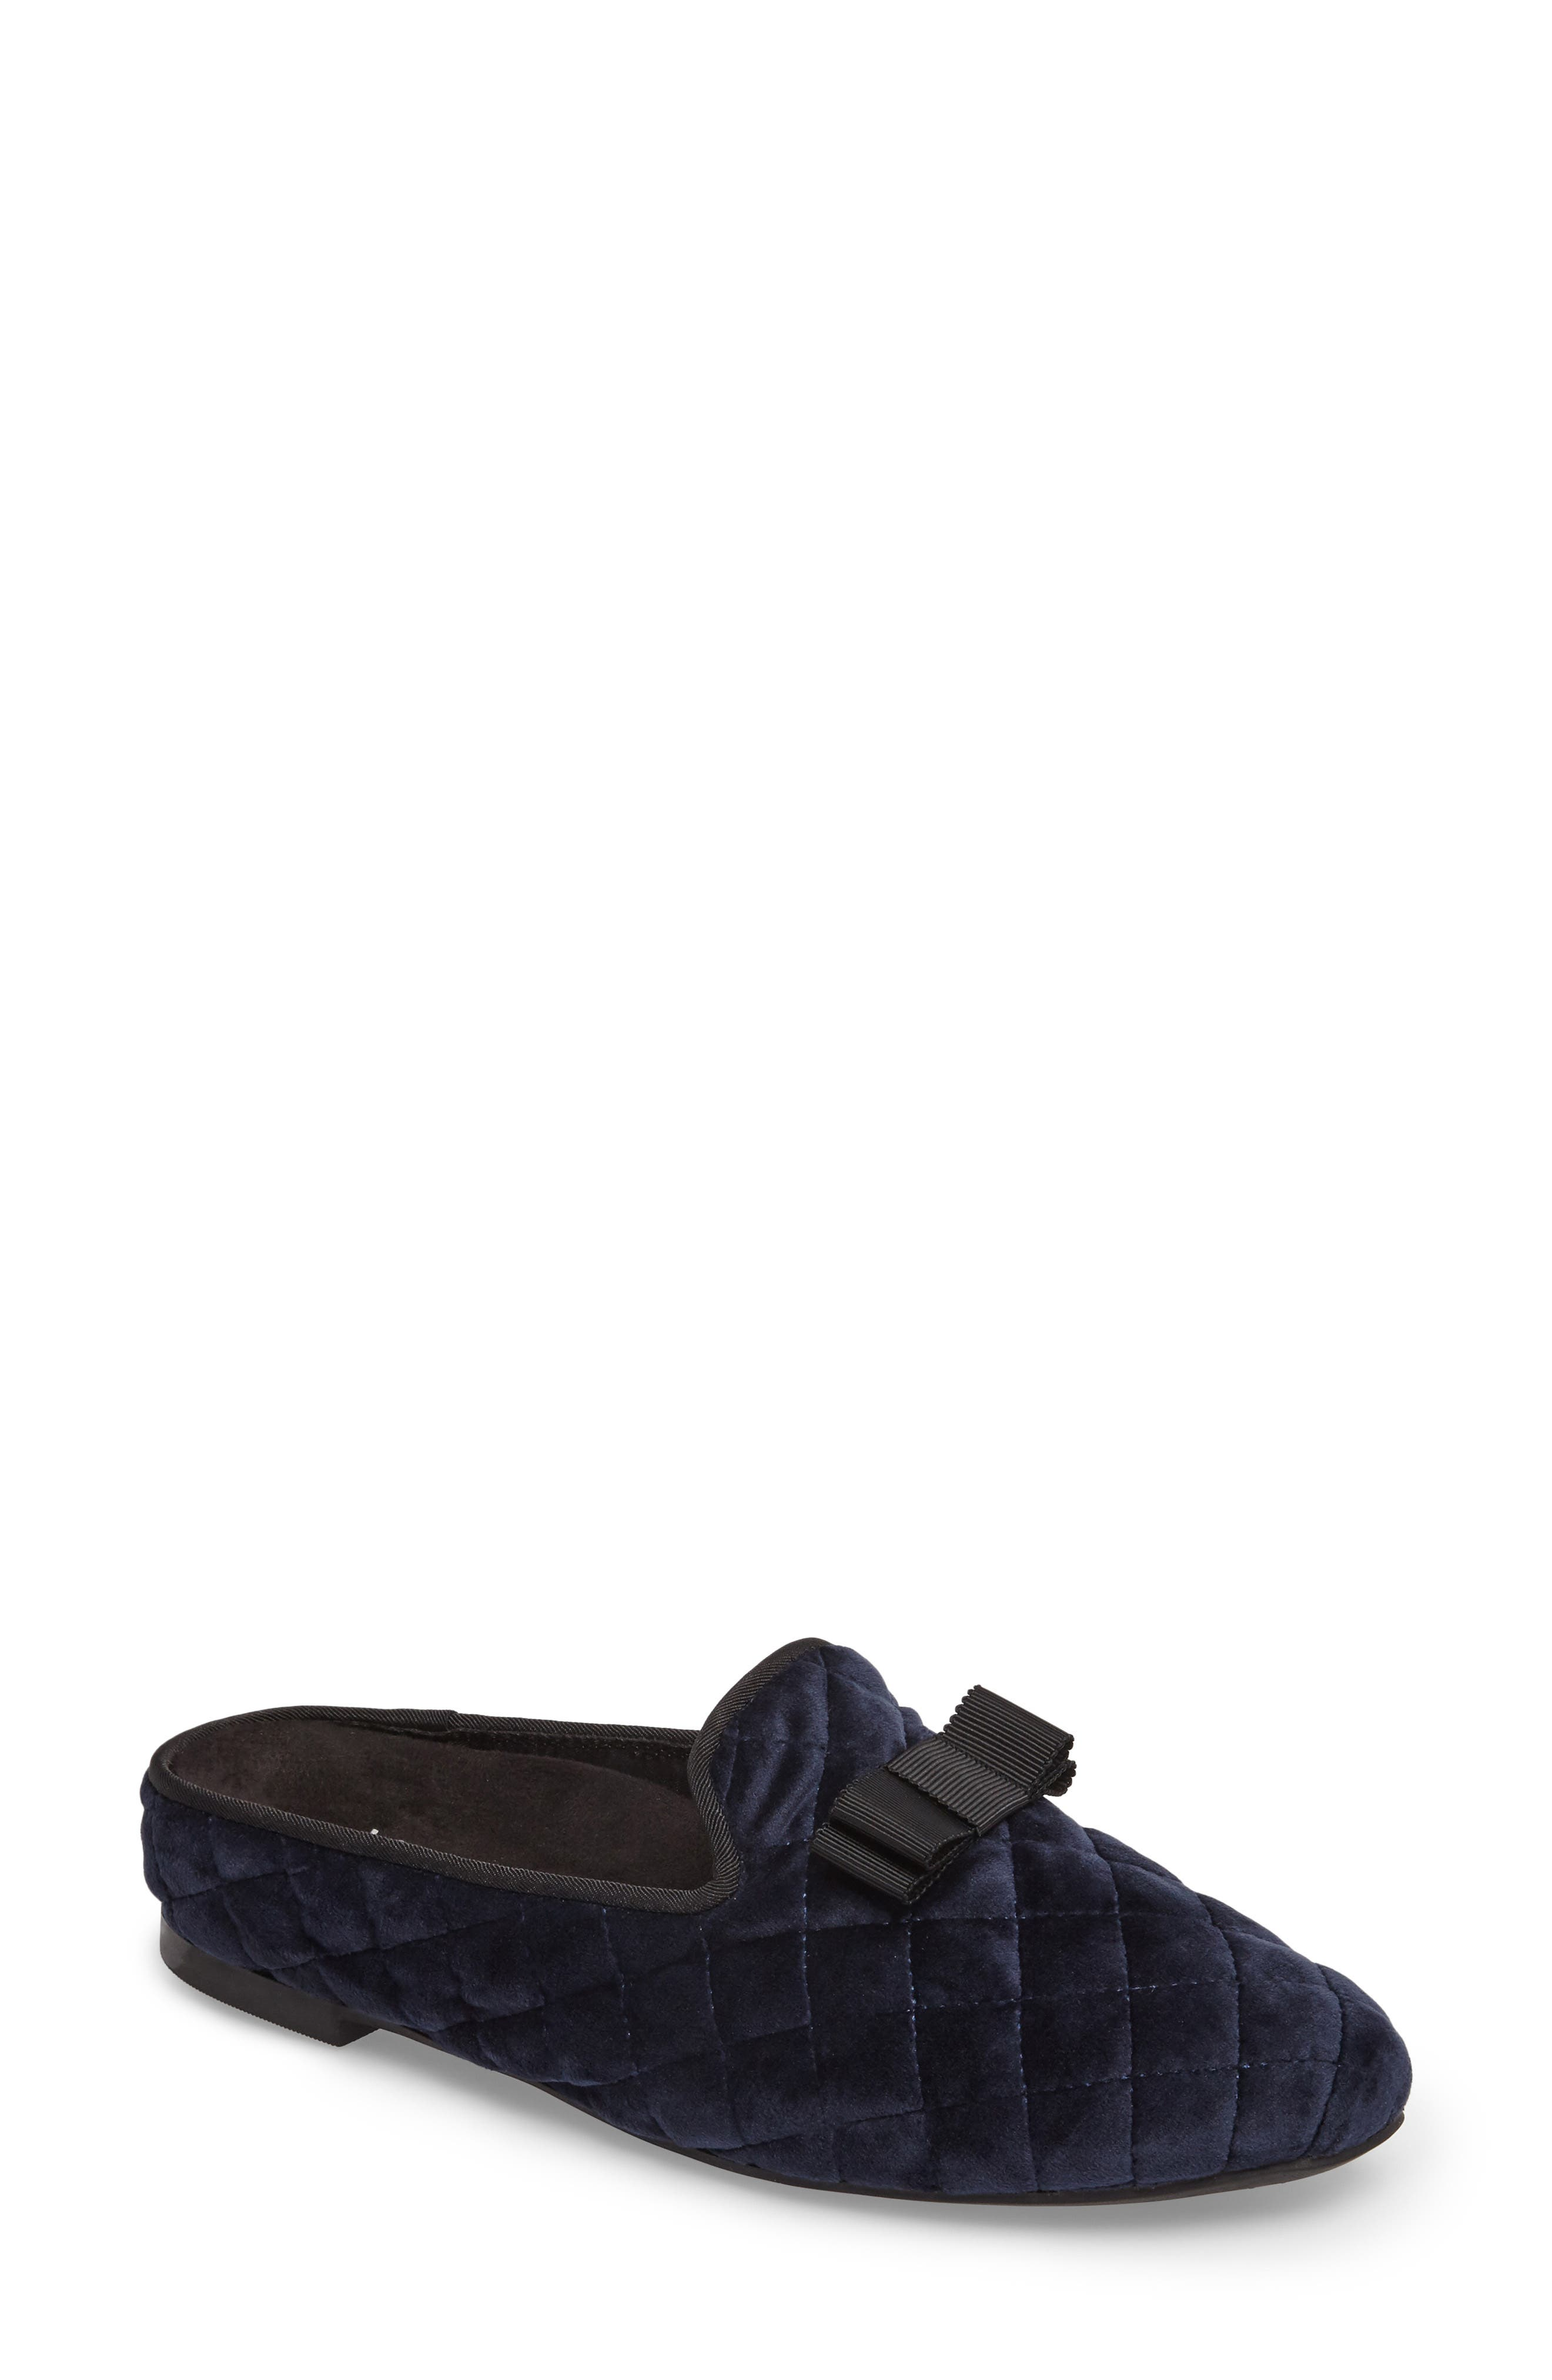 Main Image - Vionic Eloise Slipper Mule (Women)